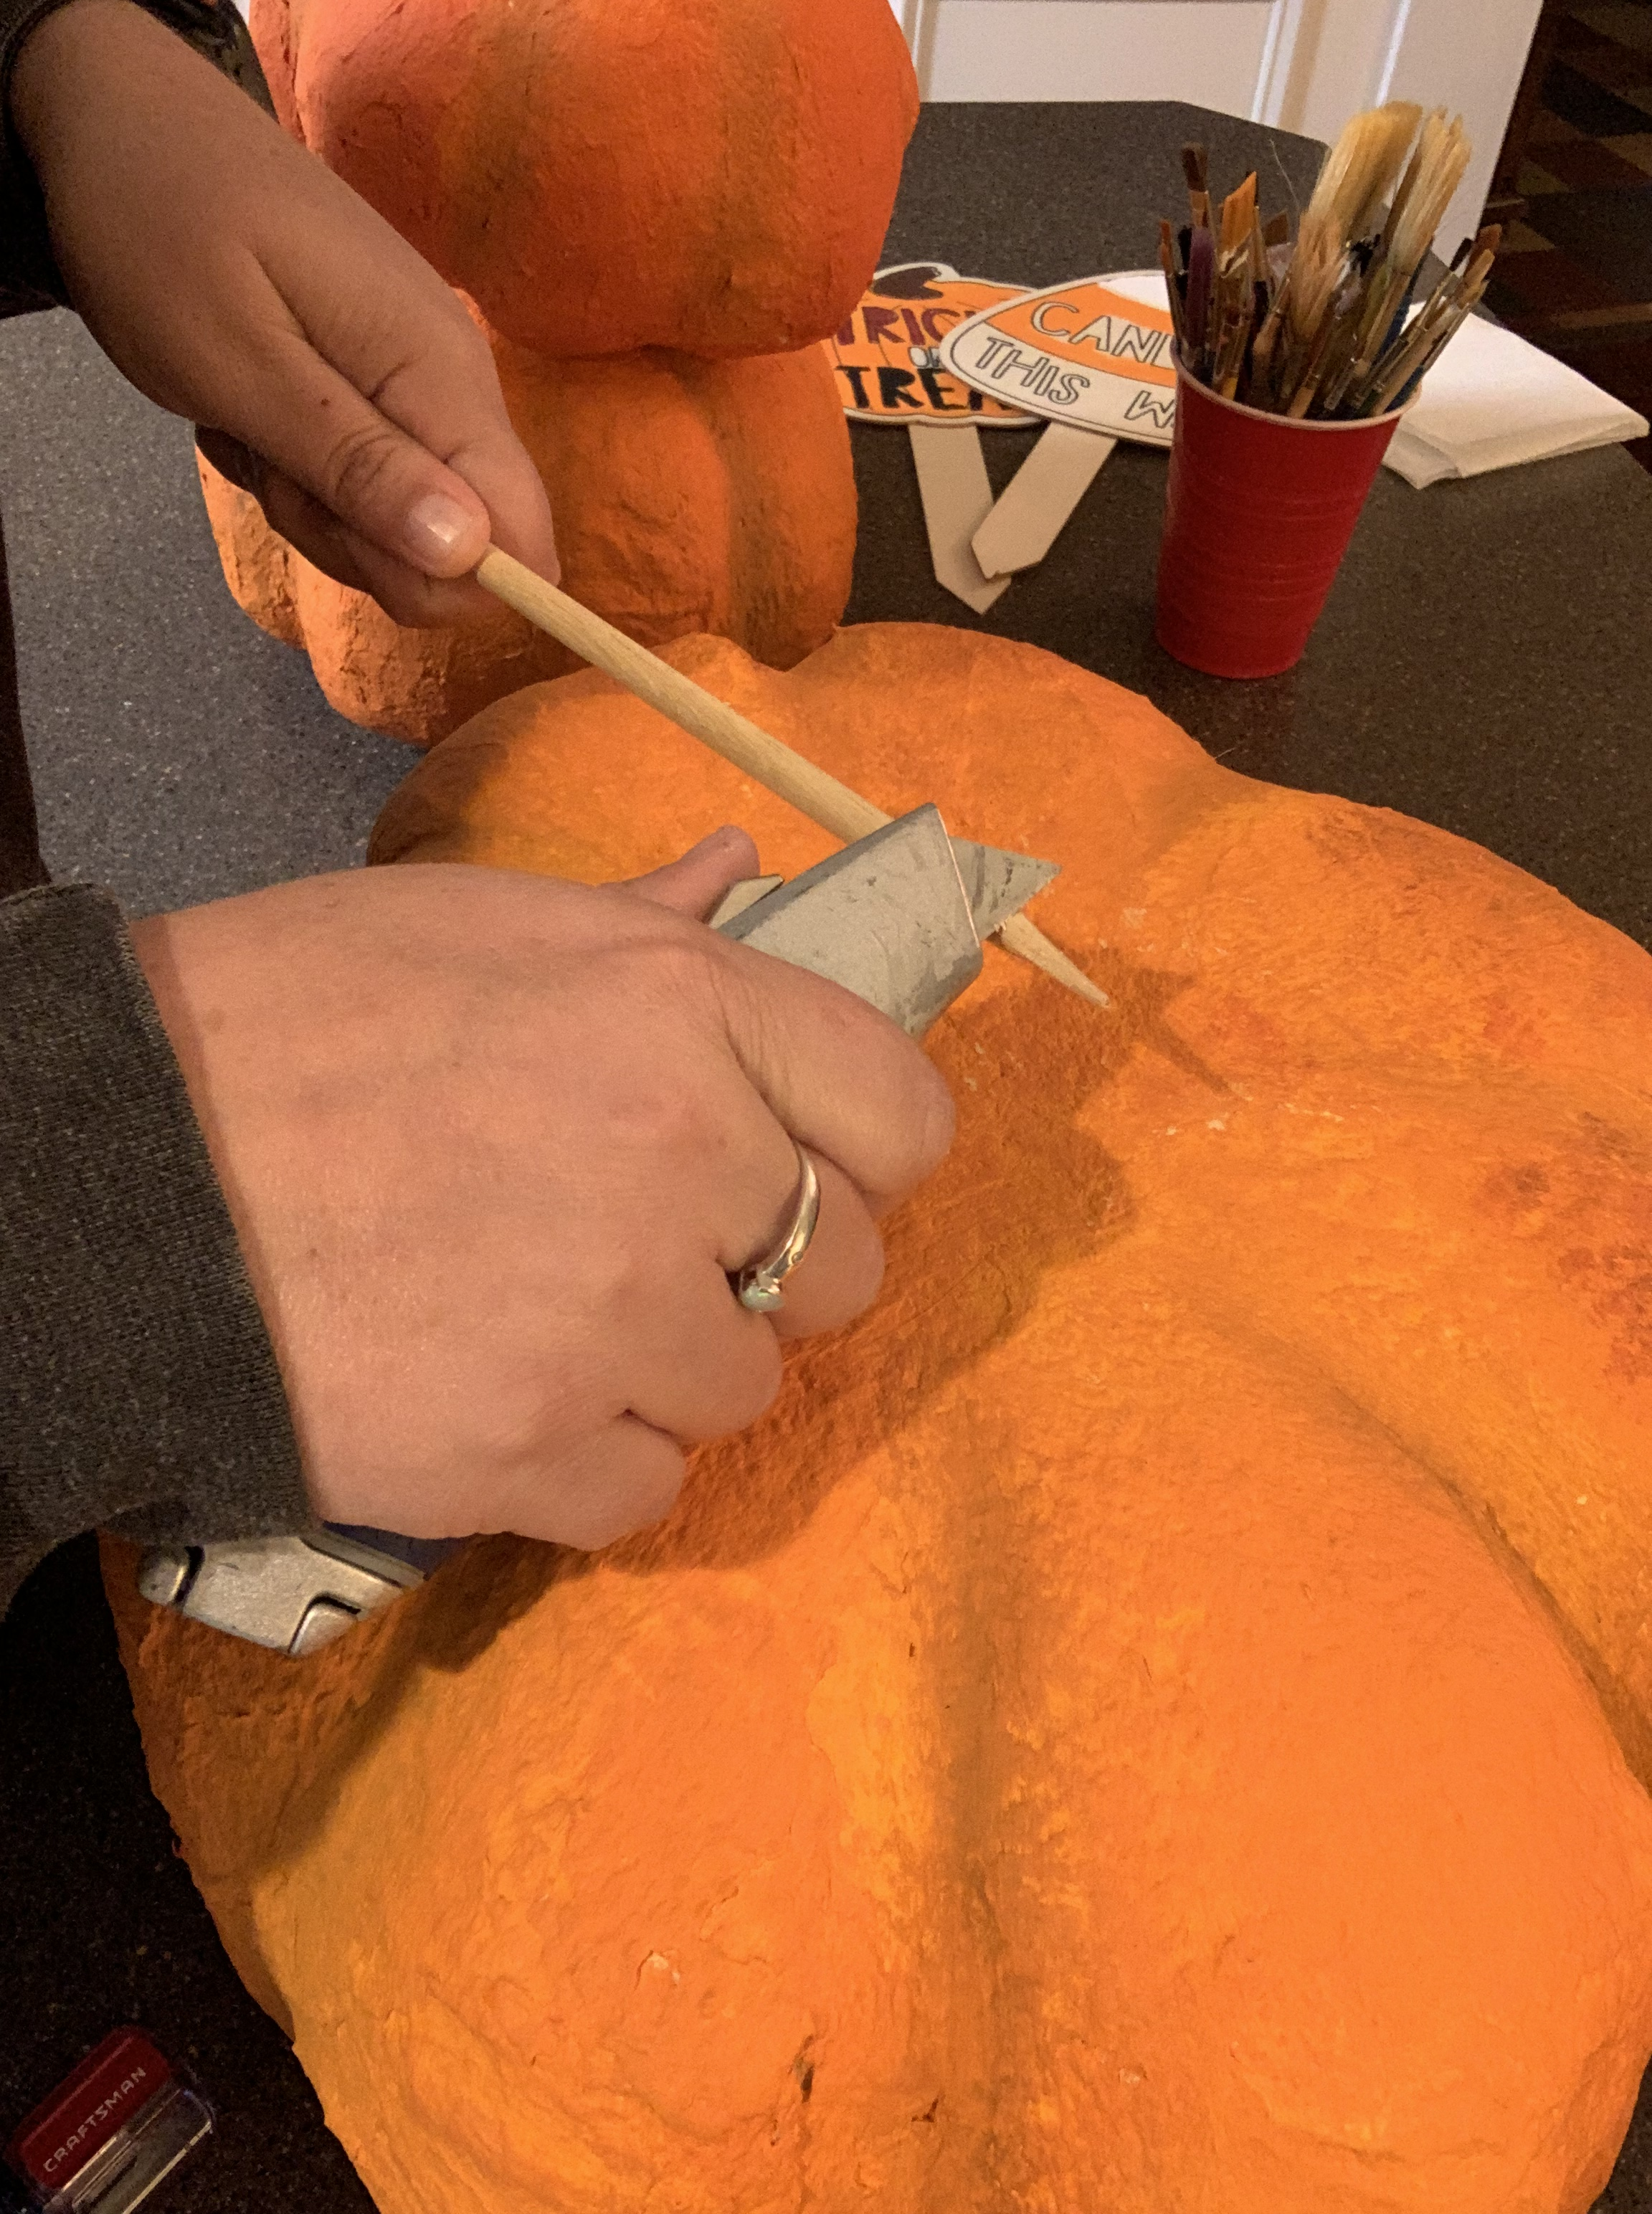 Sharpening a dowel rod to poke through the clay pumpkin forms